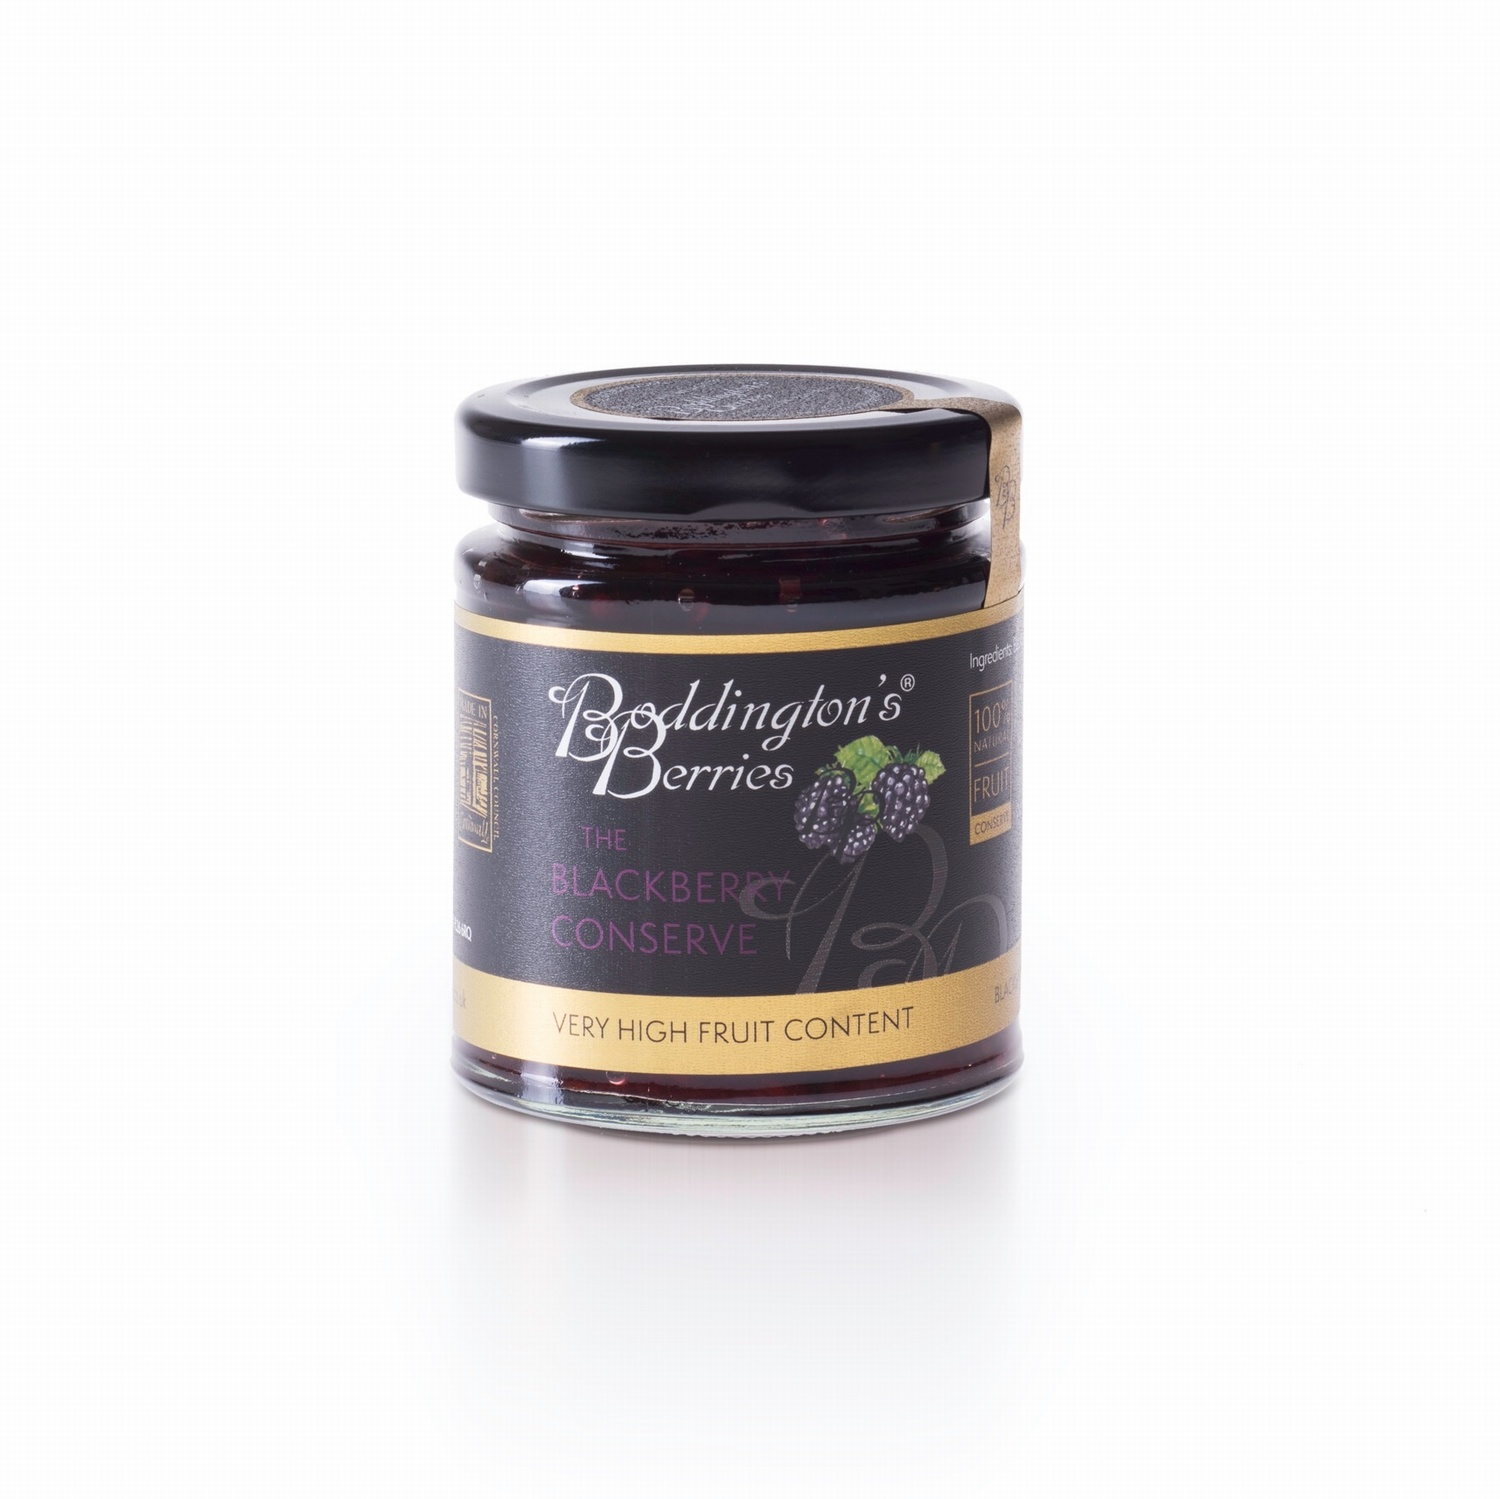 Blackberry Conserve - 227g Jar Blackberry Conserve